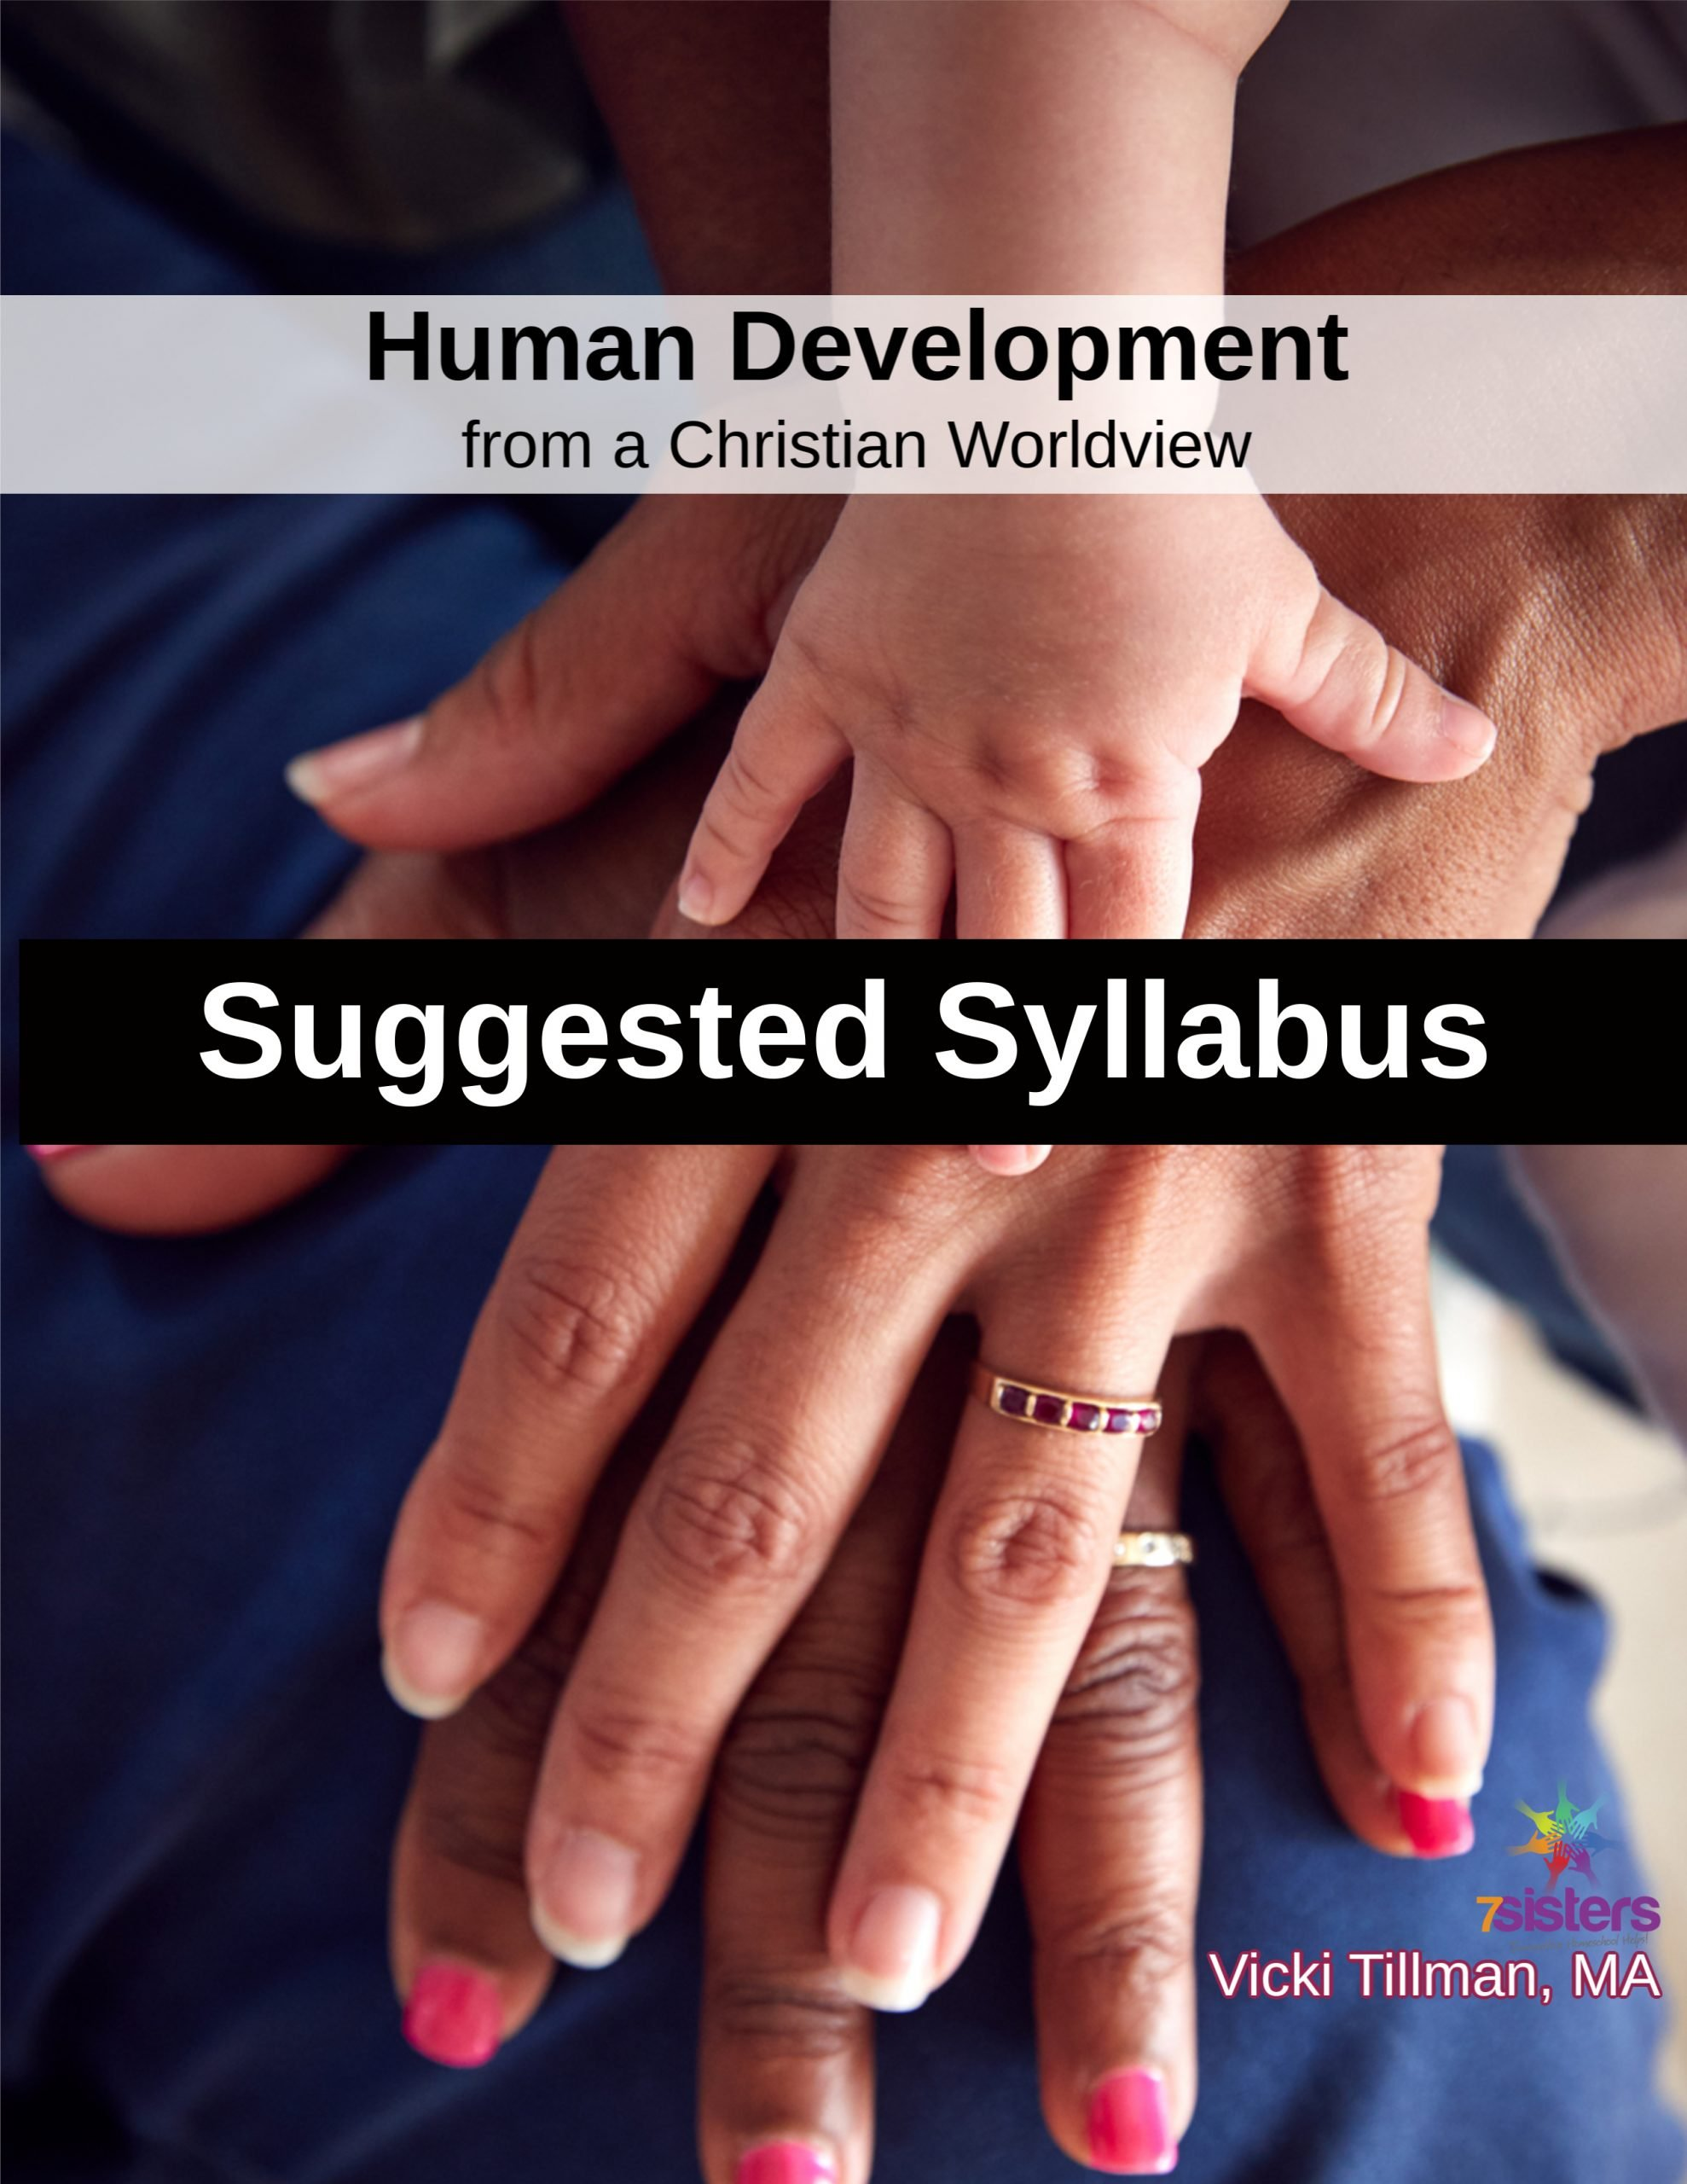 Suggested Syllabus for Human Development from a Christian Worldview 7SistersHomeschool.com